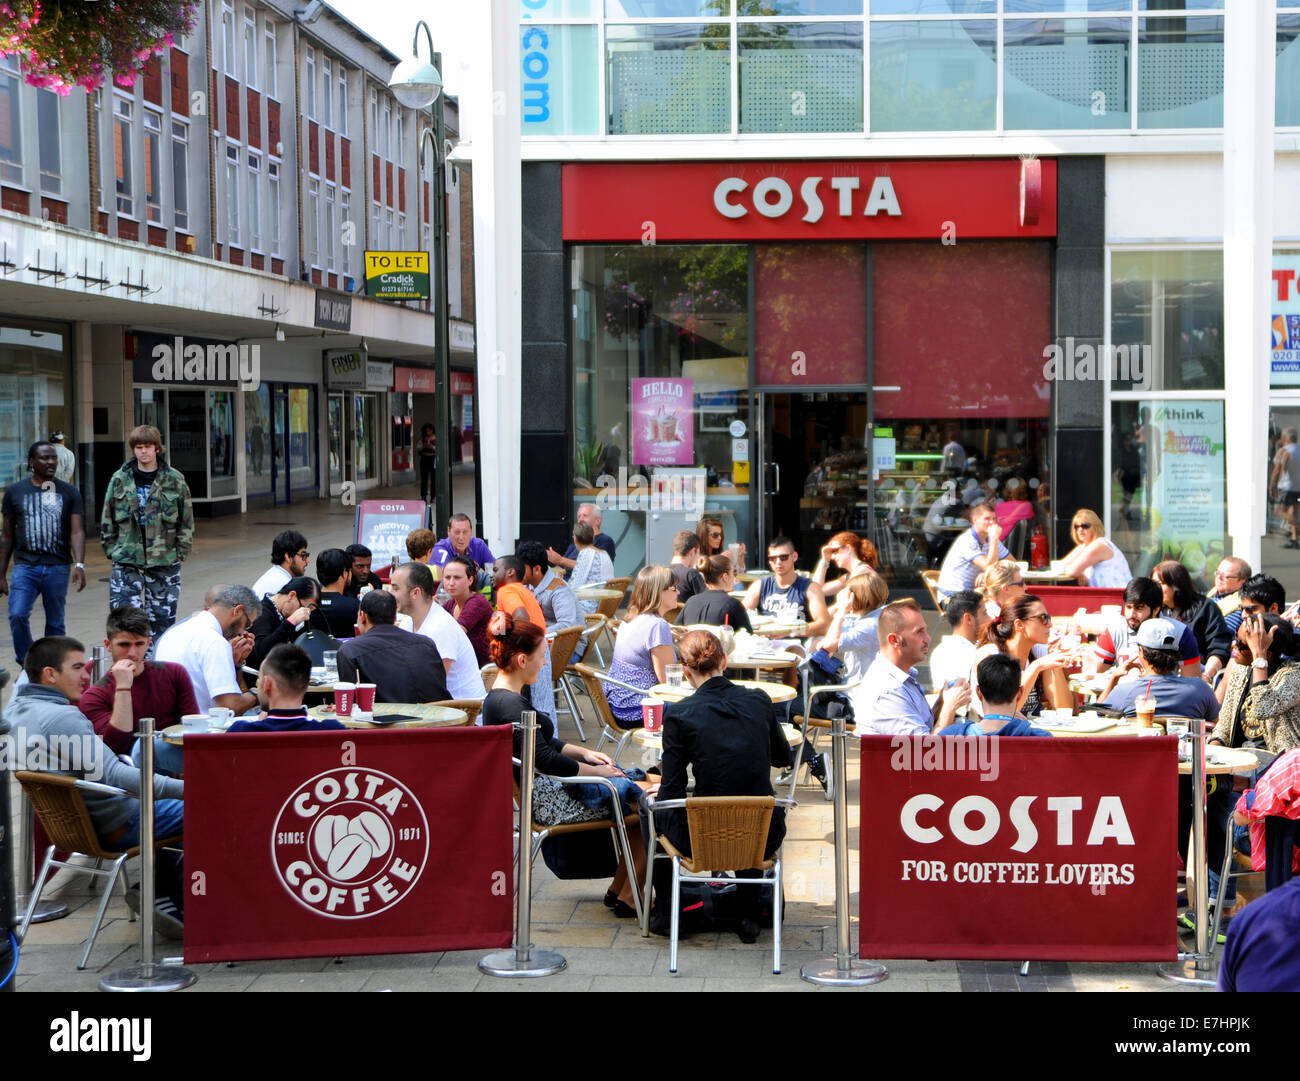 Crawley West Sussex UK - Costa Coffee cafe with people sitting outside in hot weather - Stock Image